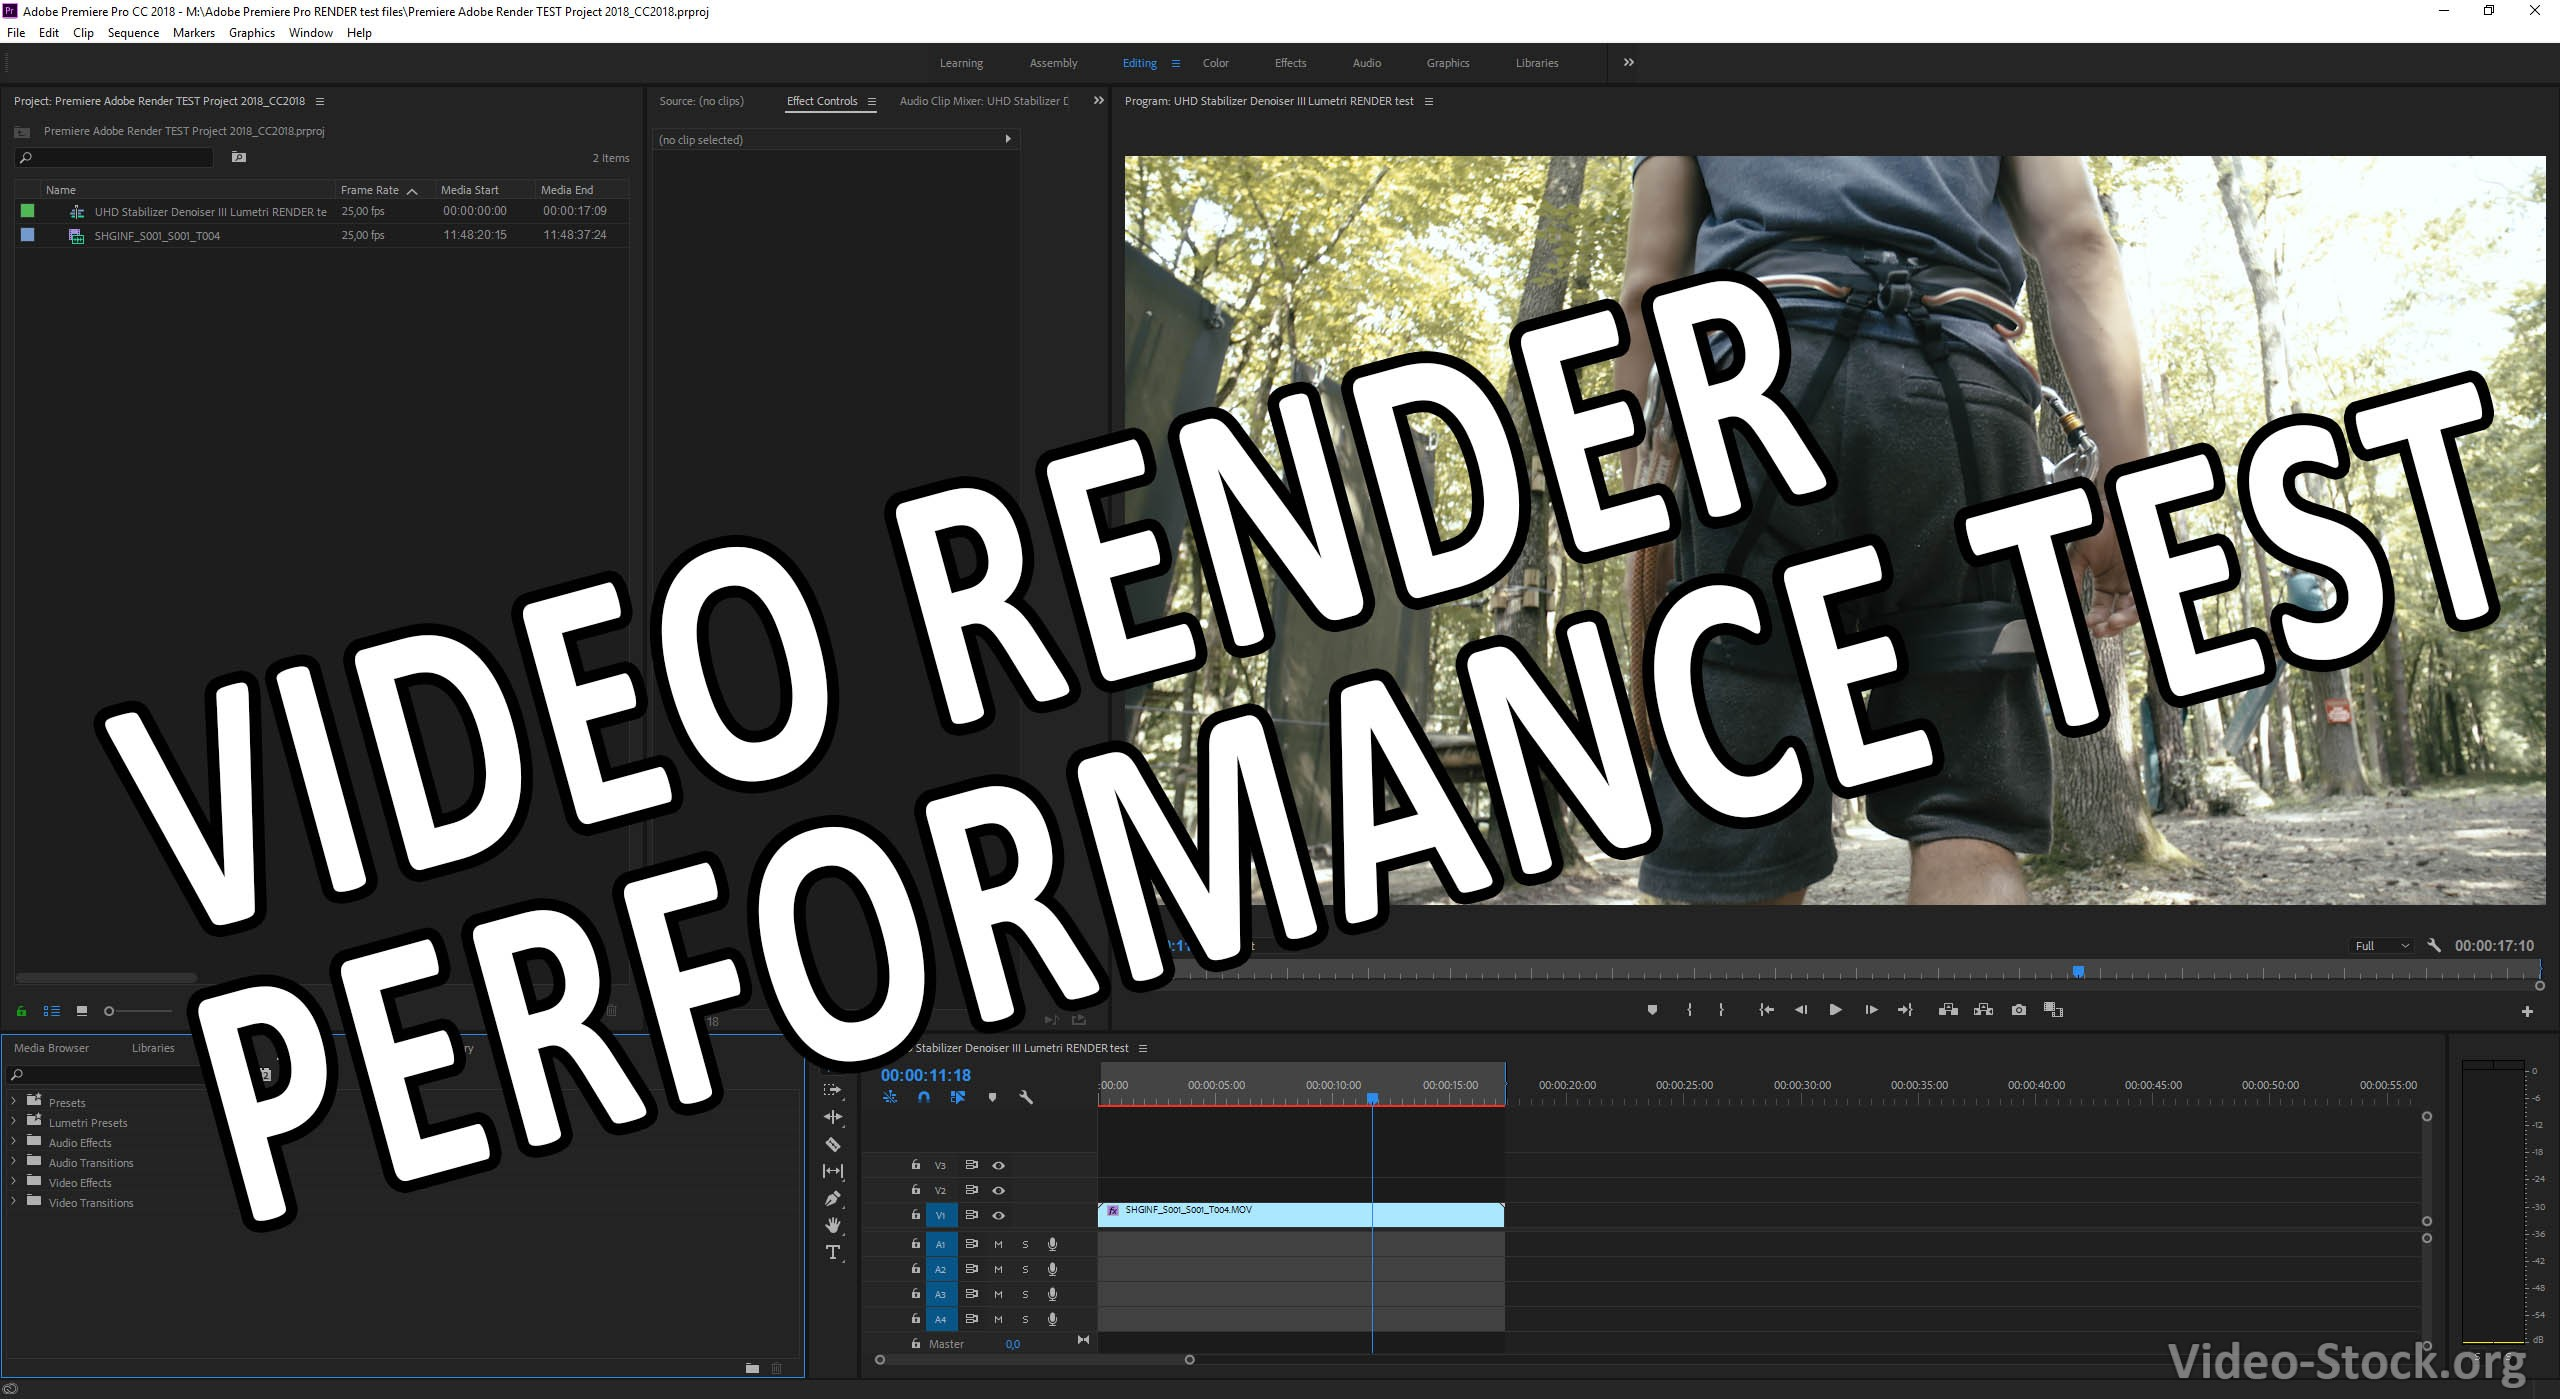 Test PC/MAC video rendering performance with defined Adobe Premiere